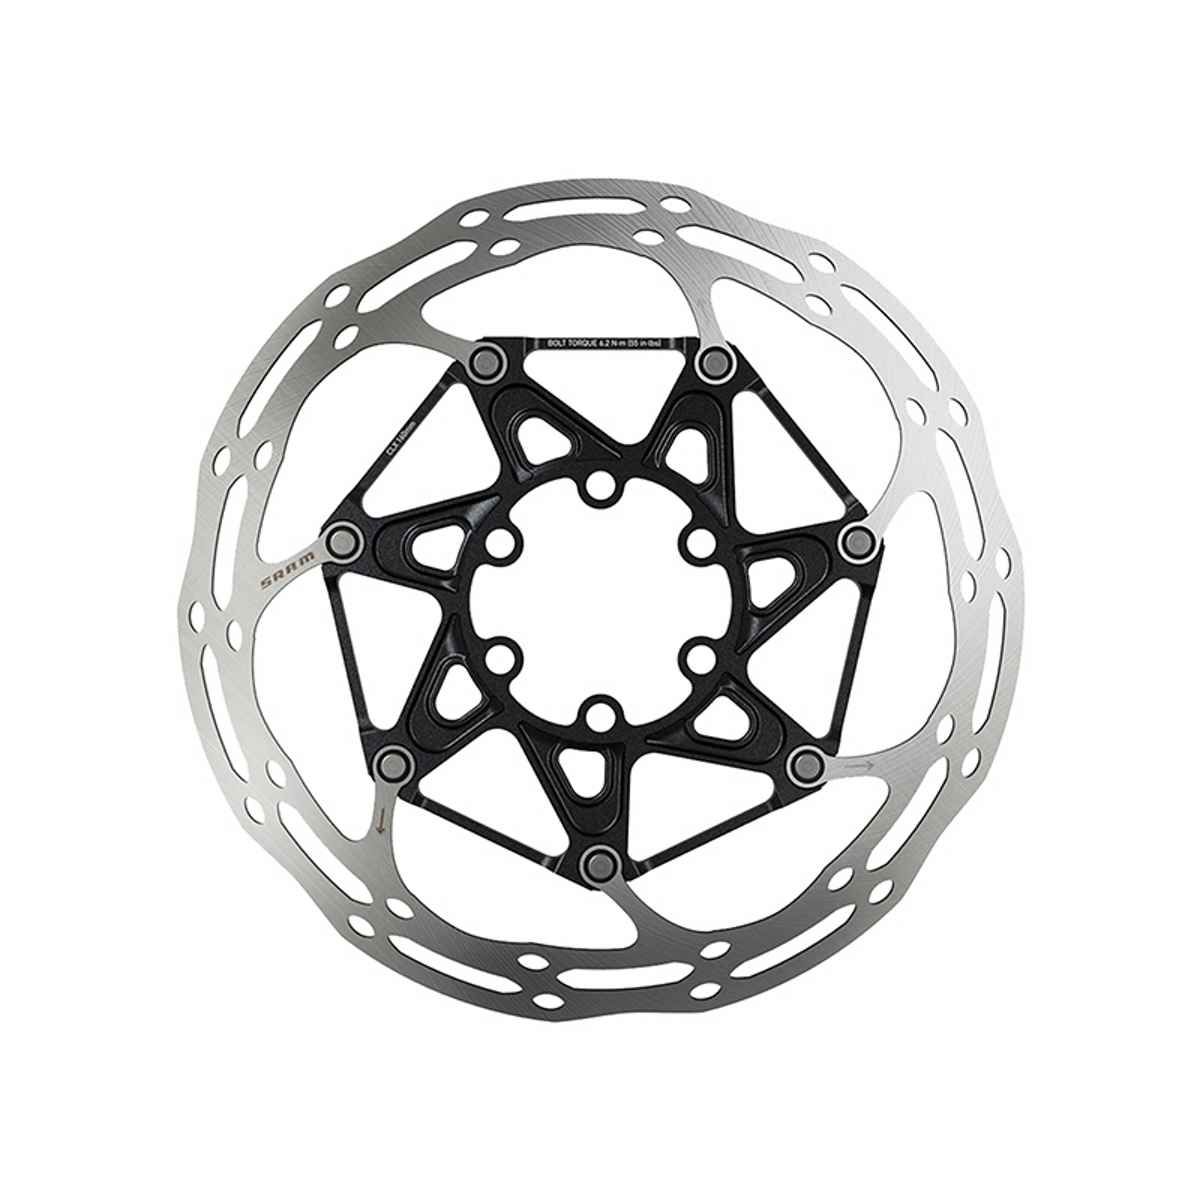 Sram Centerline X 2 - Piece Disc Rotor - 00.5018.037.020